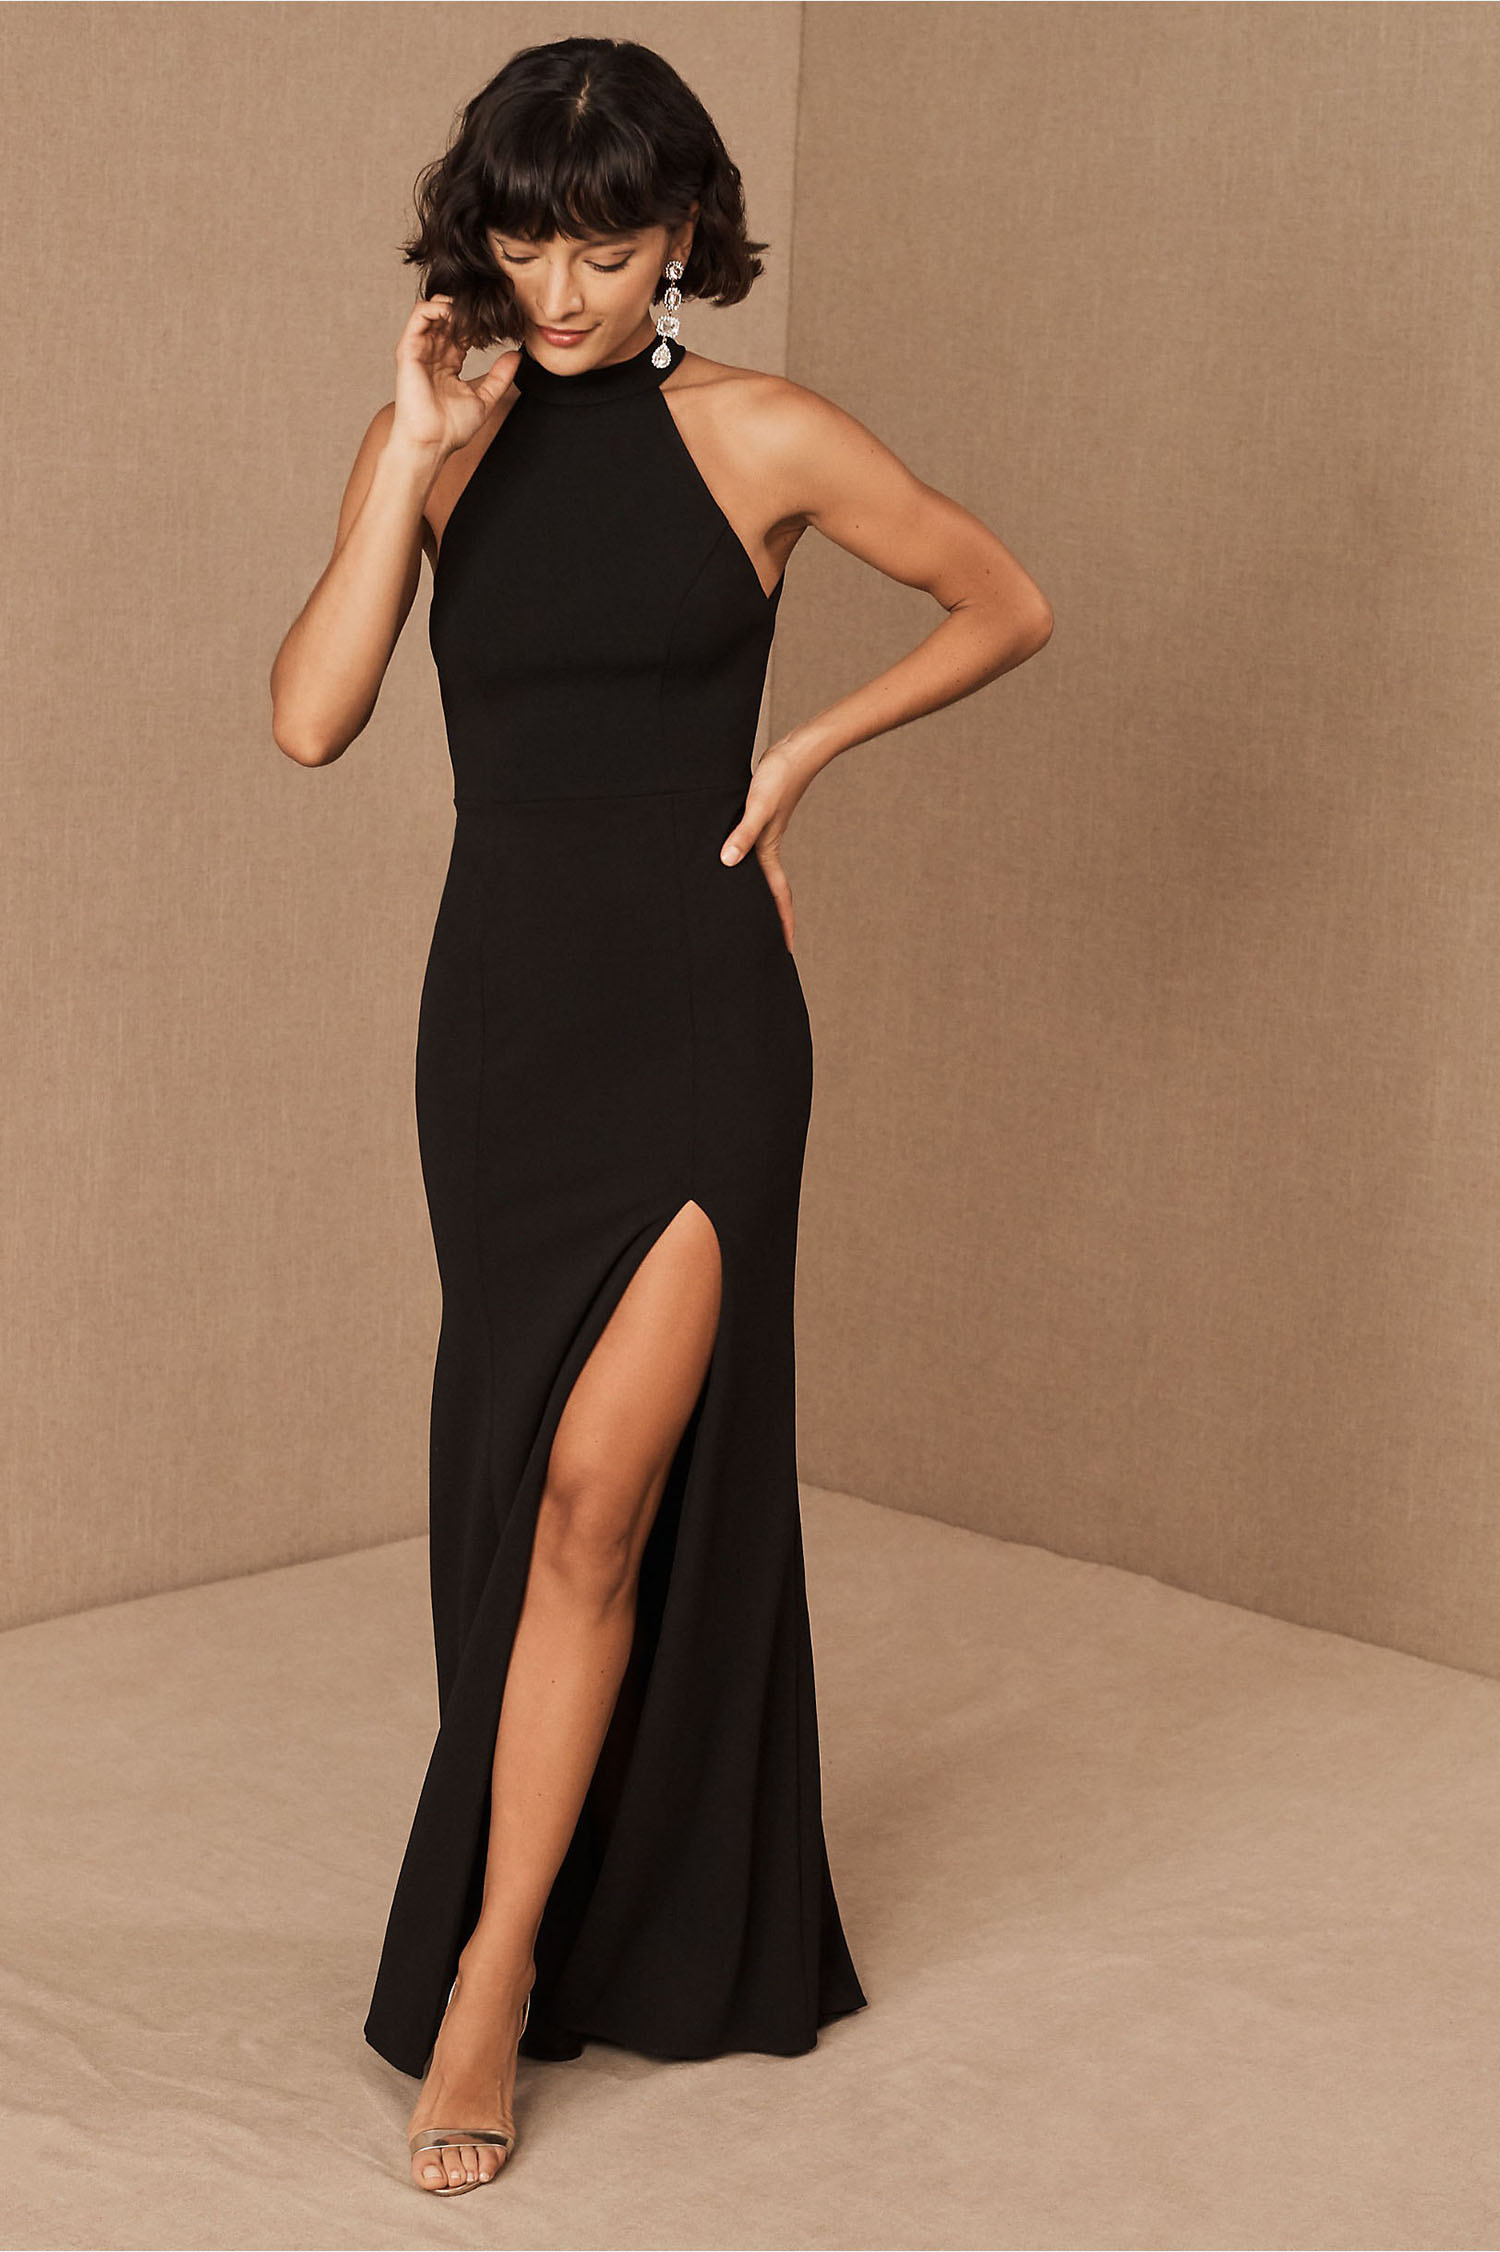 fitted high neck black mermaid wedding dress from BHDLN